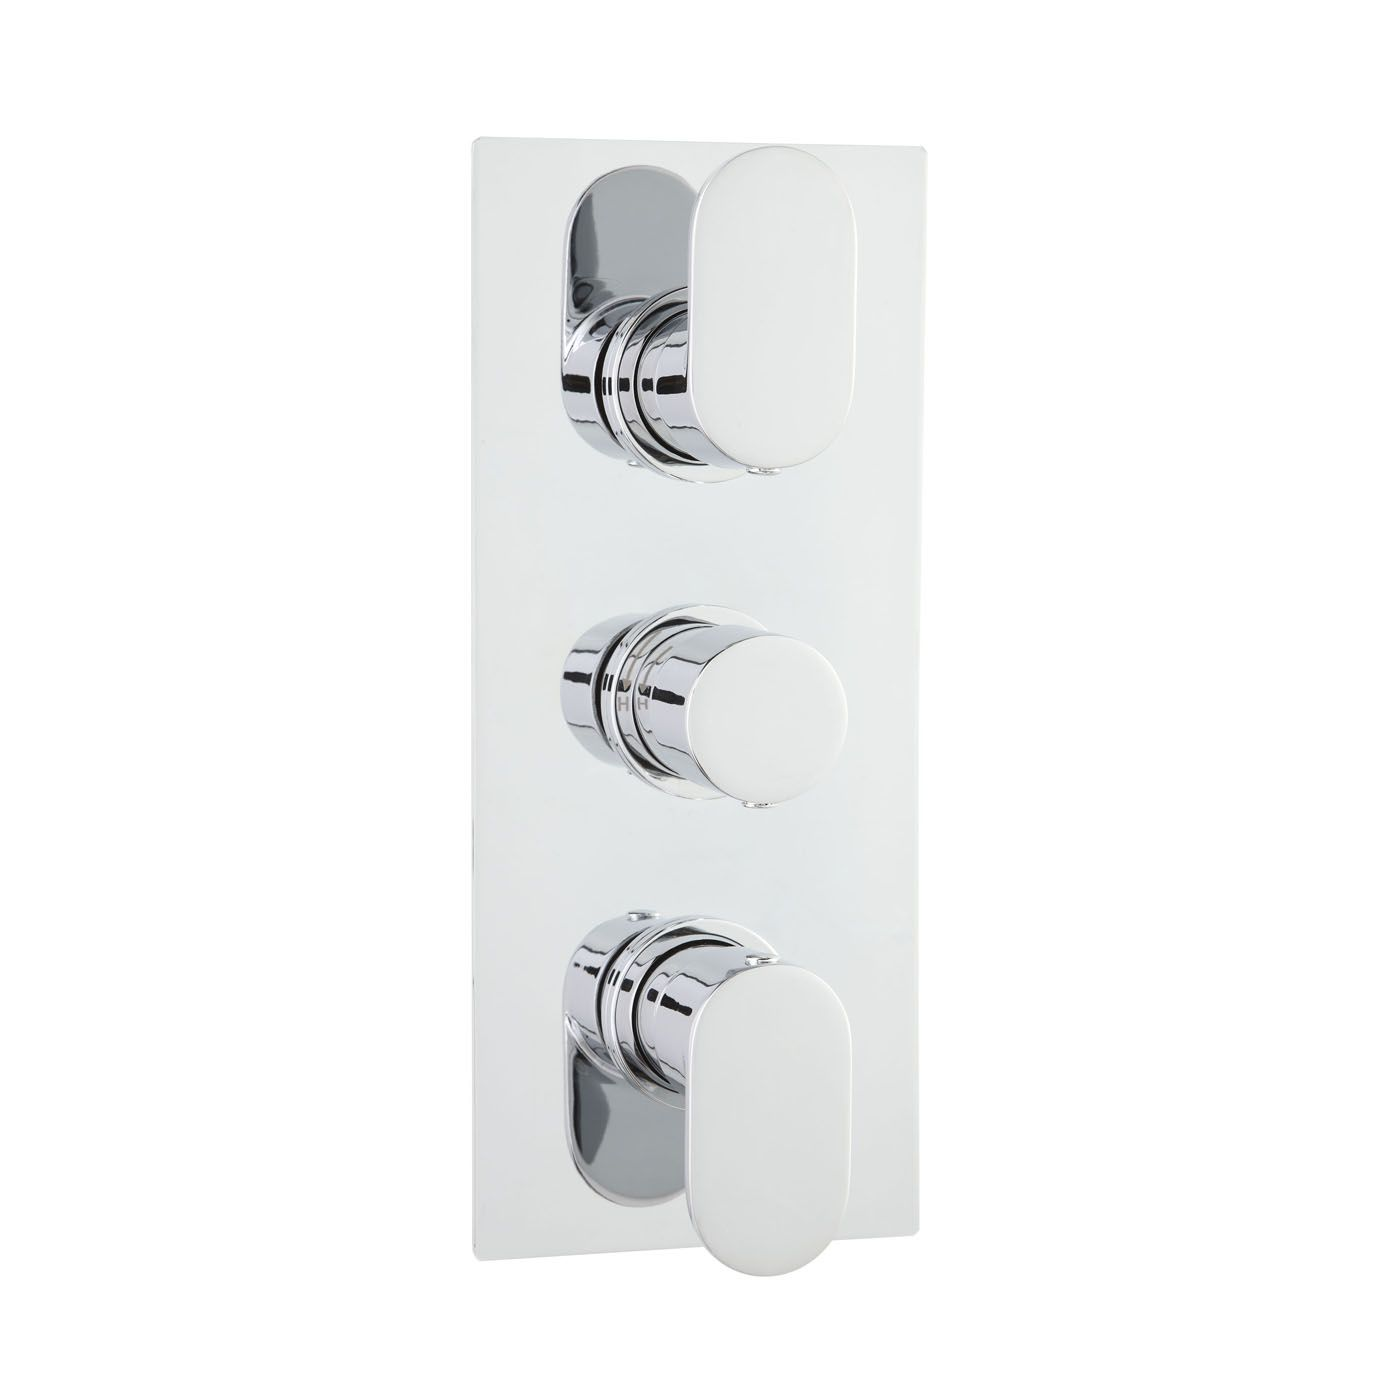 Ratio Concealed Thermostatic Triple Shower Valve with Diverter 3 Outlet Options